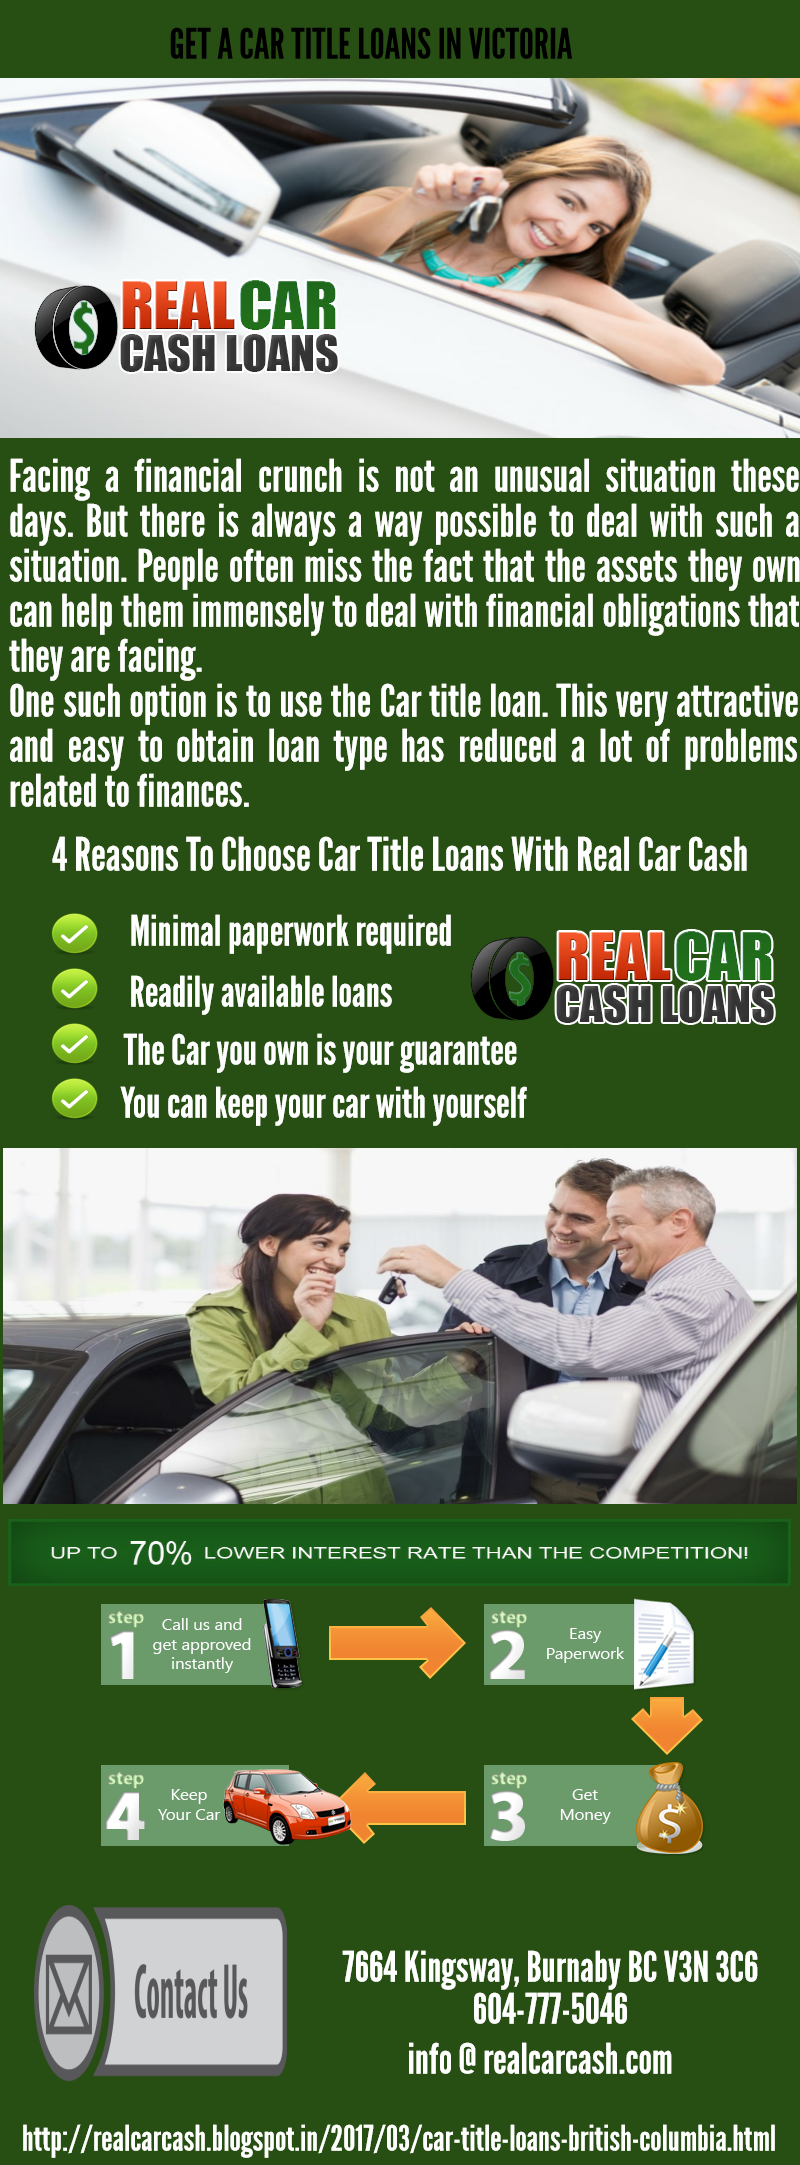 Payday loan in texarkana tx image 2